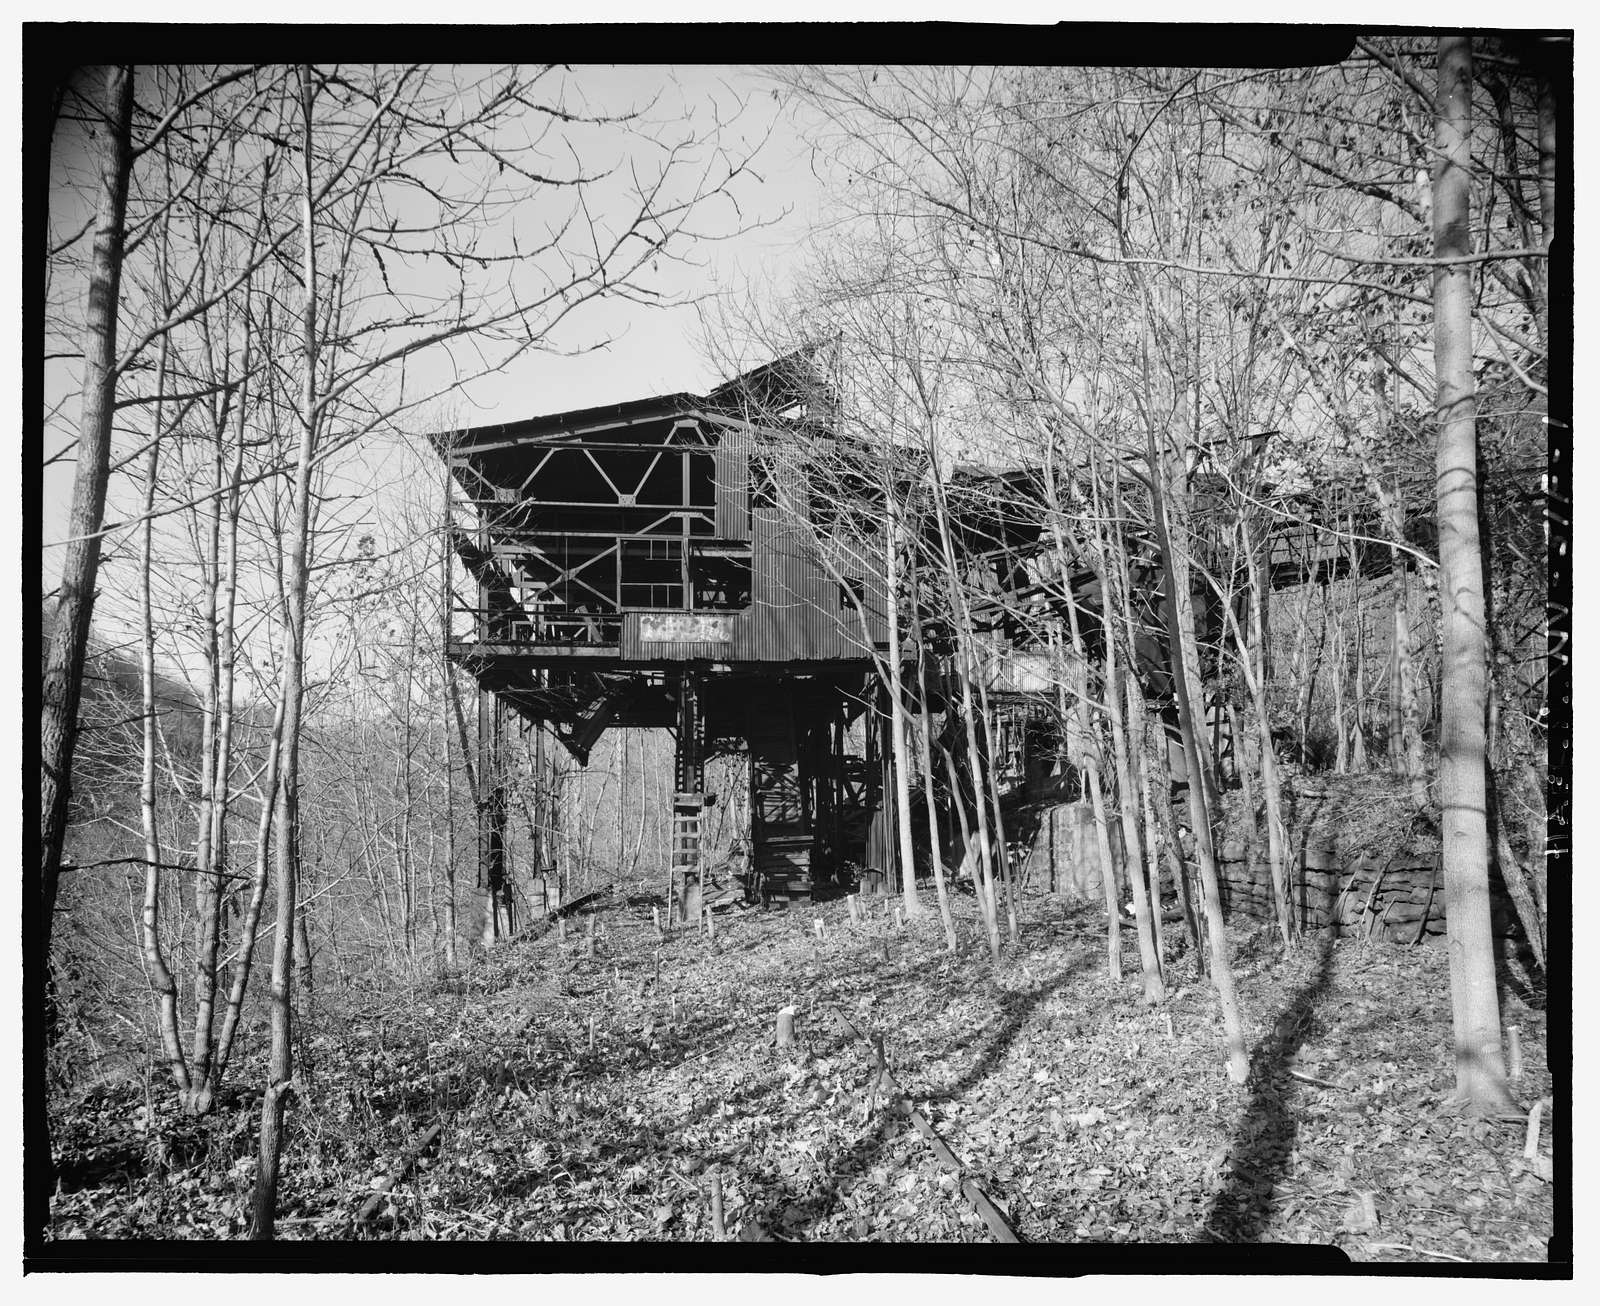 Nuttallburg Mine Complex, Tipple, North side of New River, 2.7 miles upstream from Fayette Landing, Lookout, Fayette County, WV